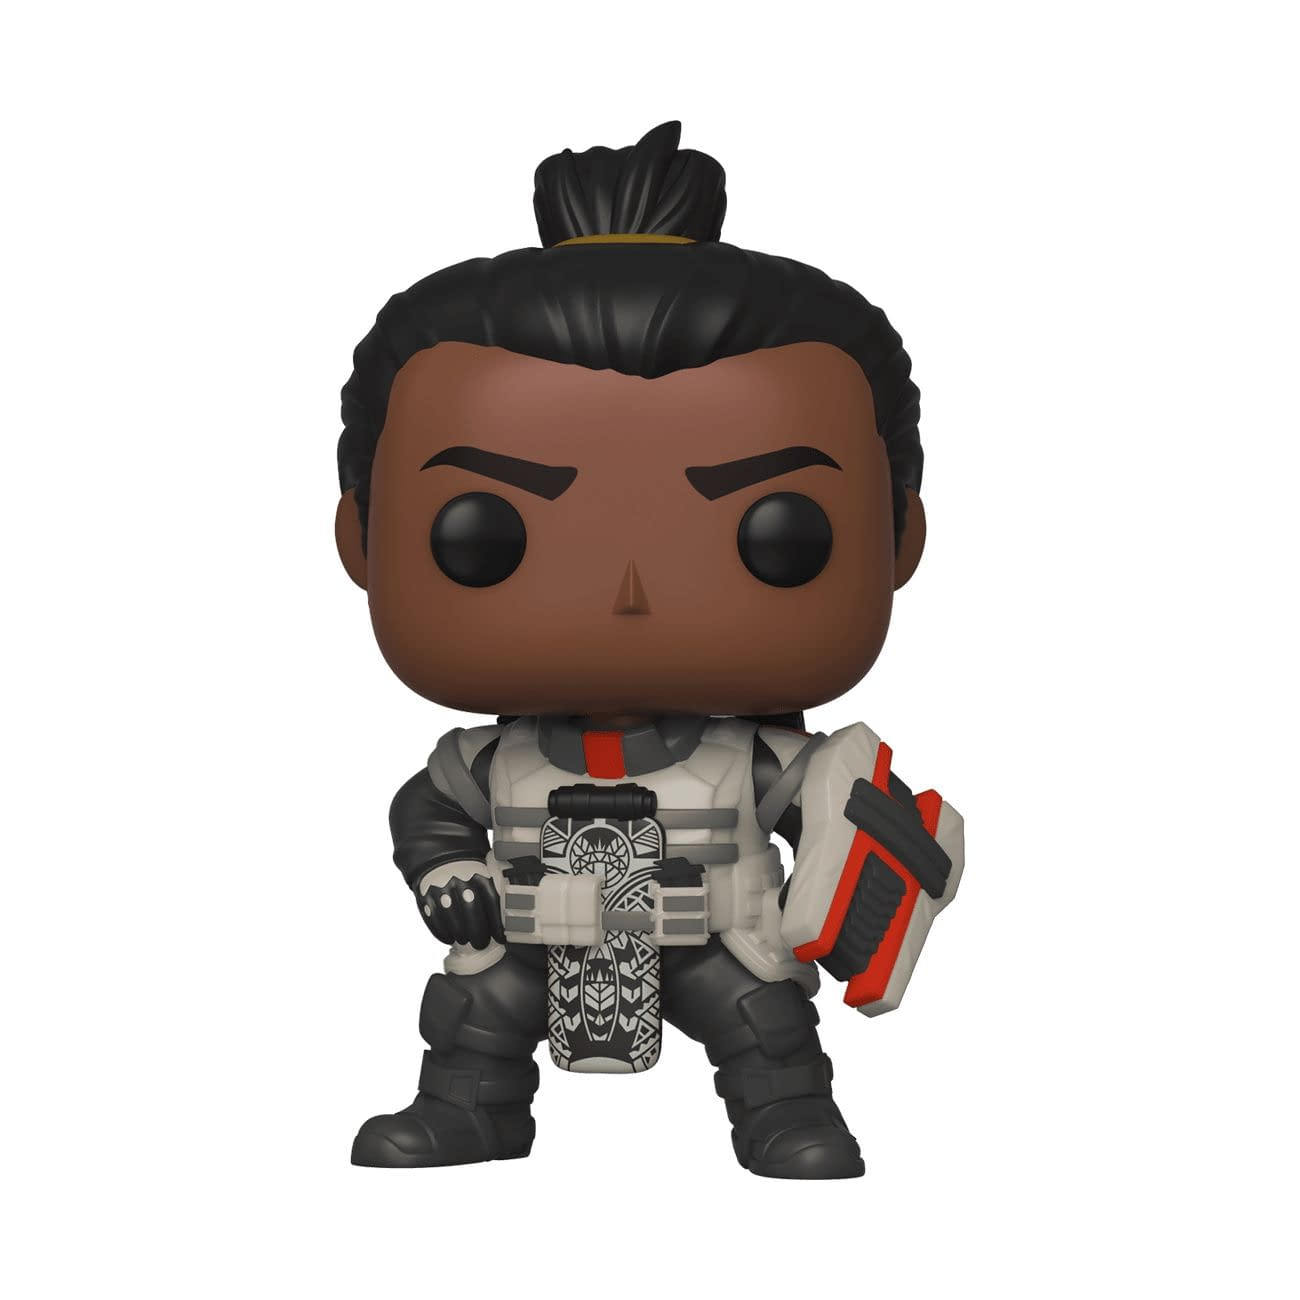 Apex Legends Enter the Arena of the Funko Pop Battle Royale